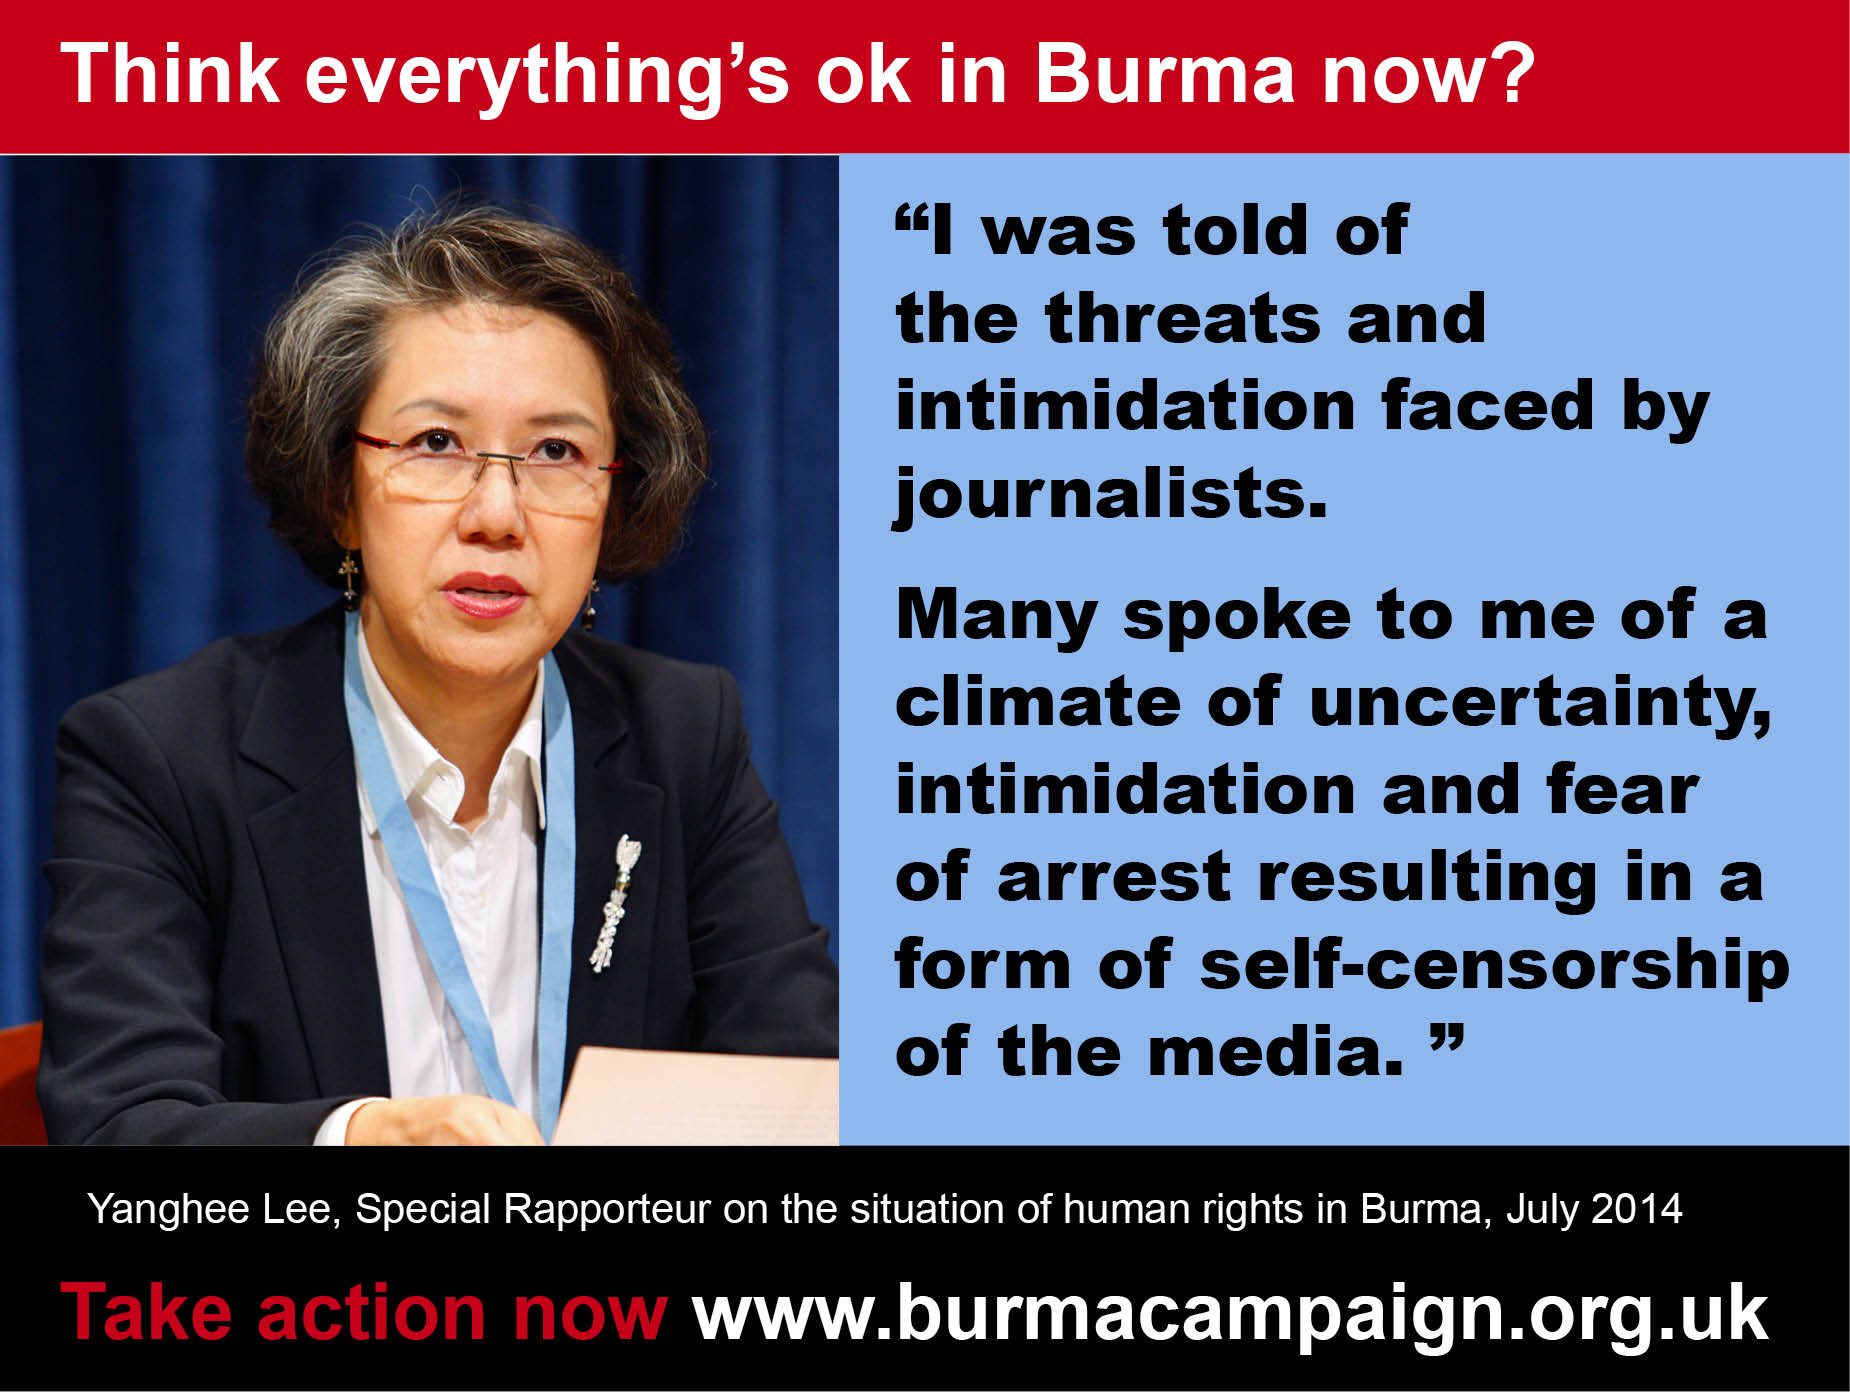 1 think everything ok Yanghee Lee UN report 2014 media threats burma campaign UK